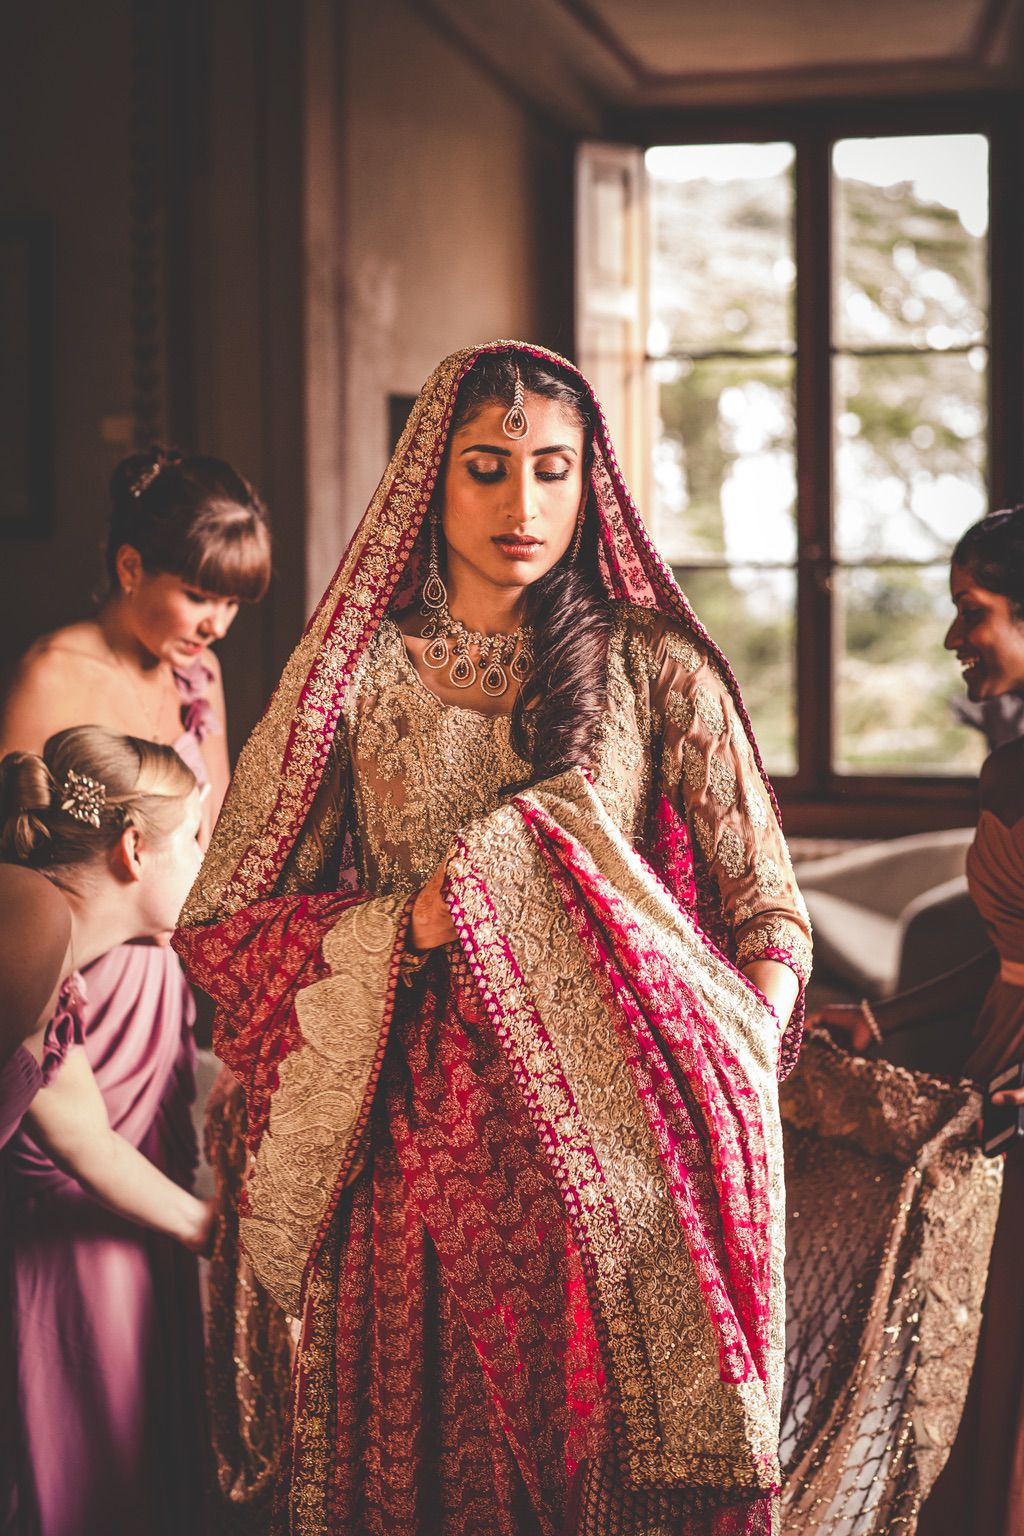 Sana-Safinaz-traditional-pakistani-dress-bride-villa-catignano-tuscany